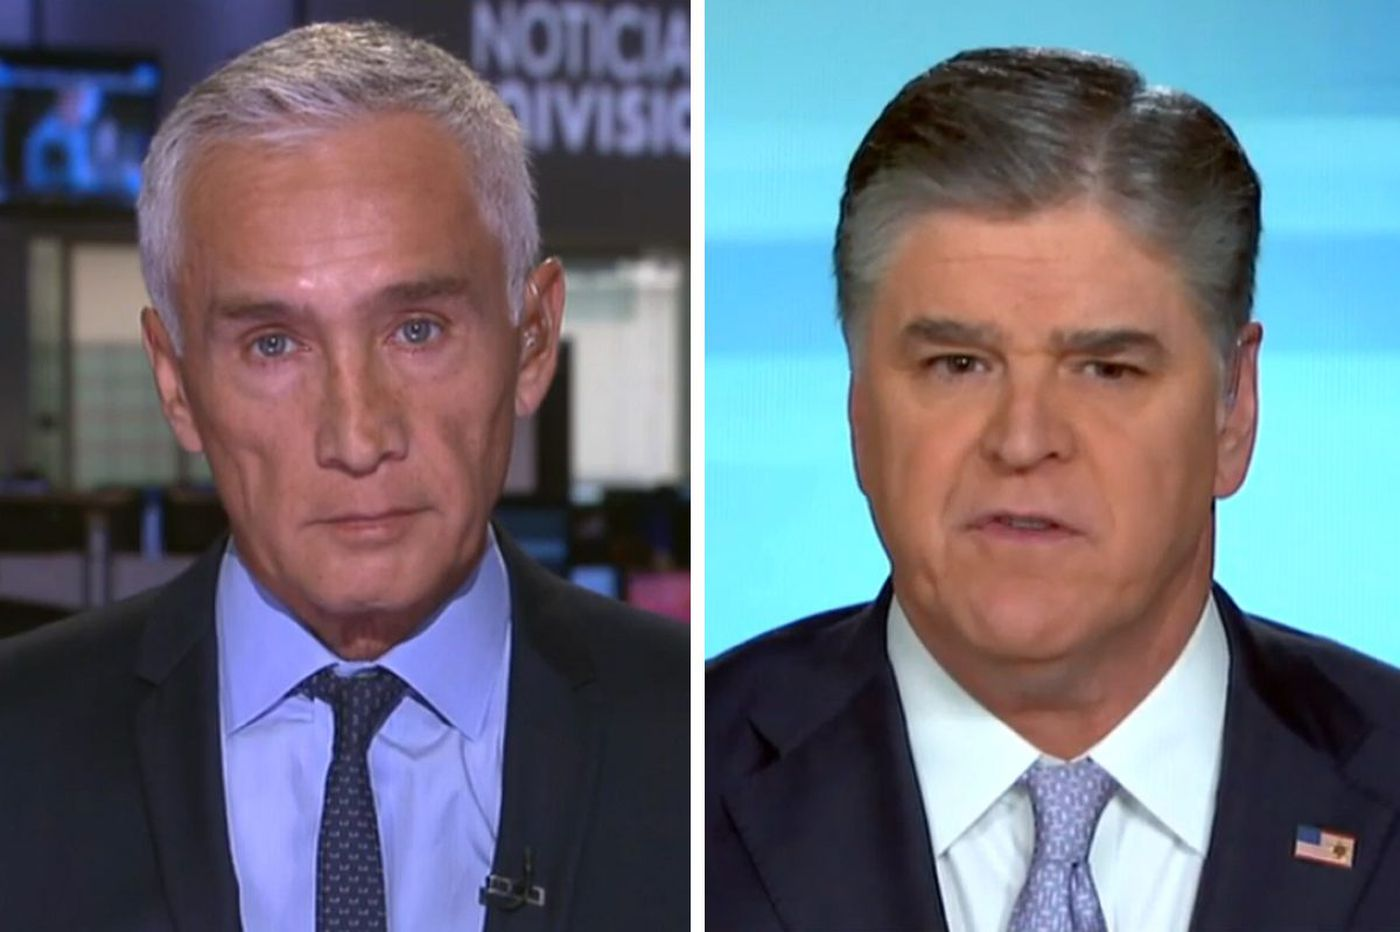 Univision's Jorge Ramos tells Sean Hannity he's lying to his Fox News viewers